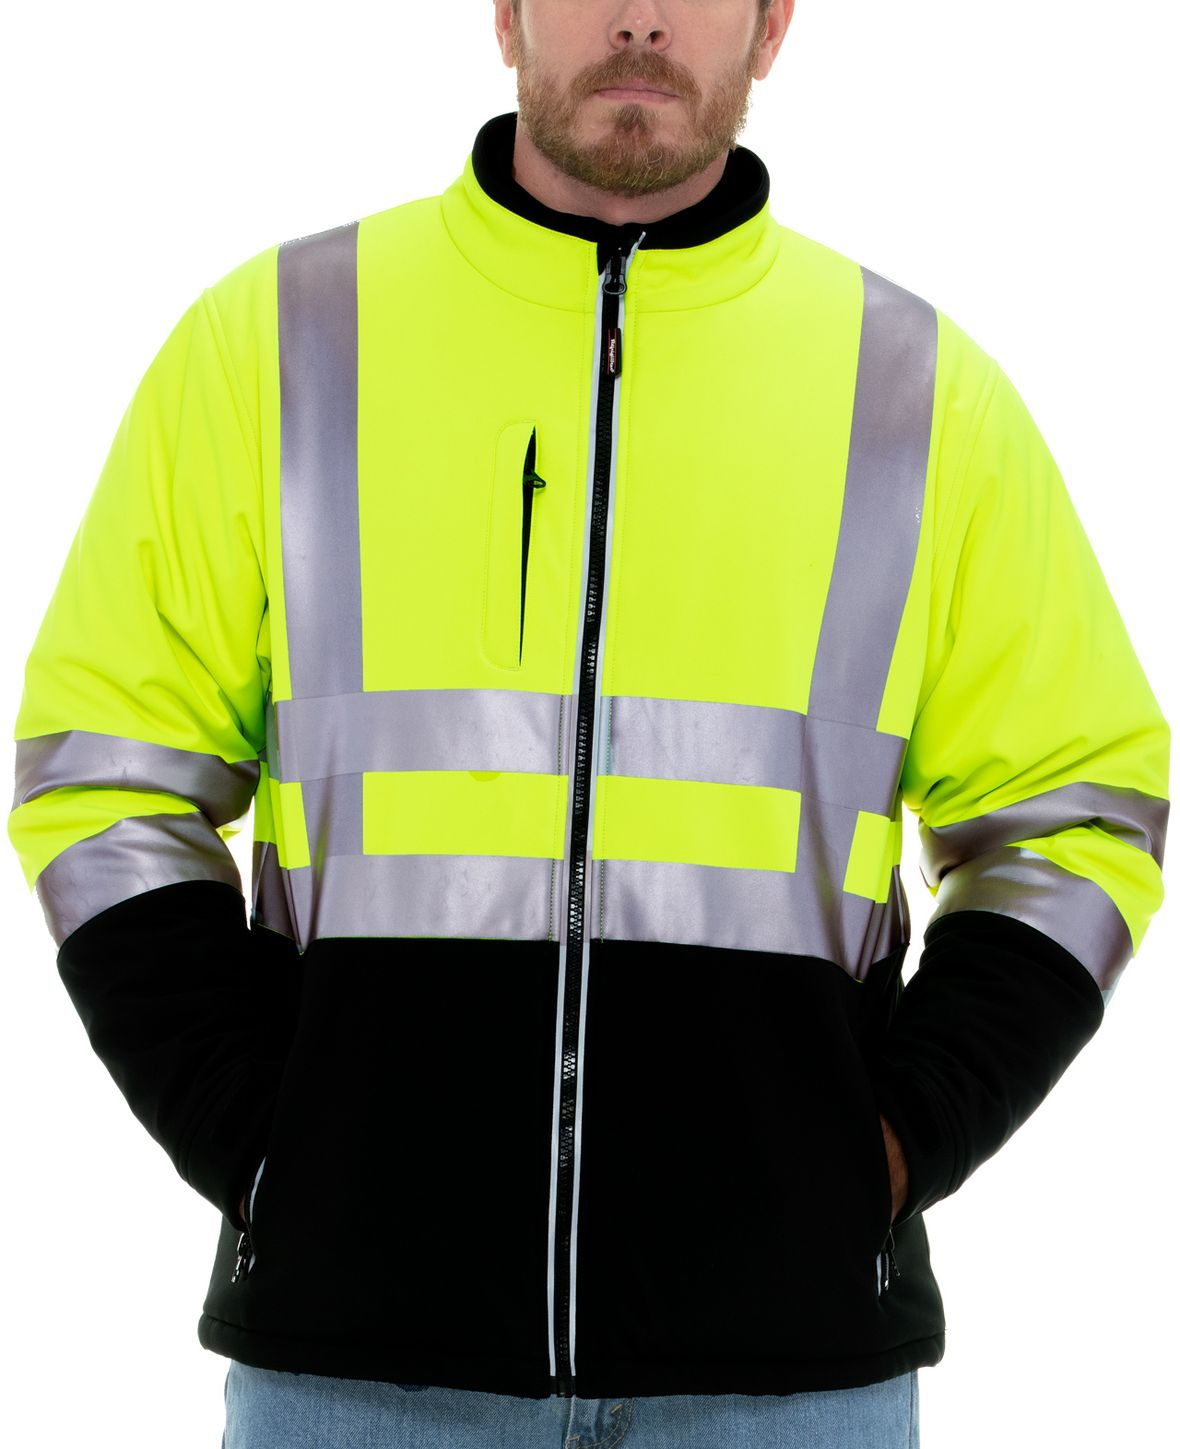 RefrigiWear 0496 Softshell HiVis Winter Work Jacket HiVis Lime Yellow With Reflective Tape Example